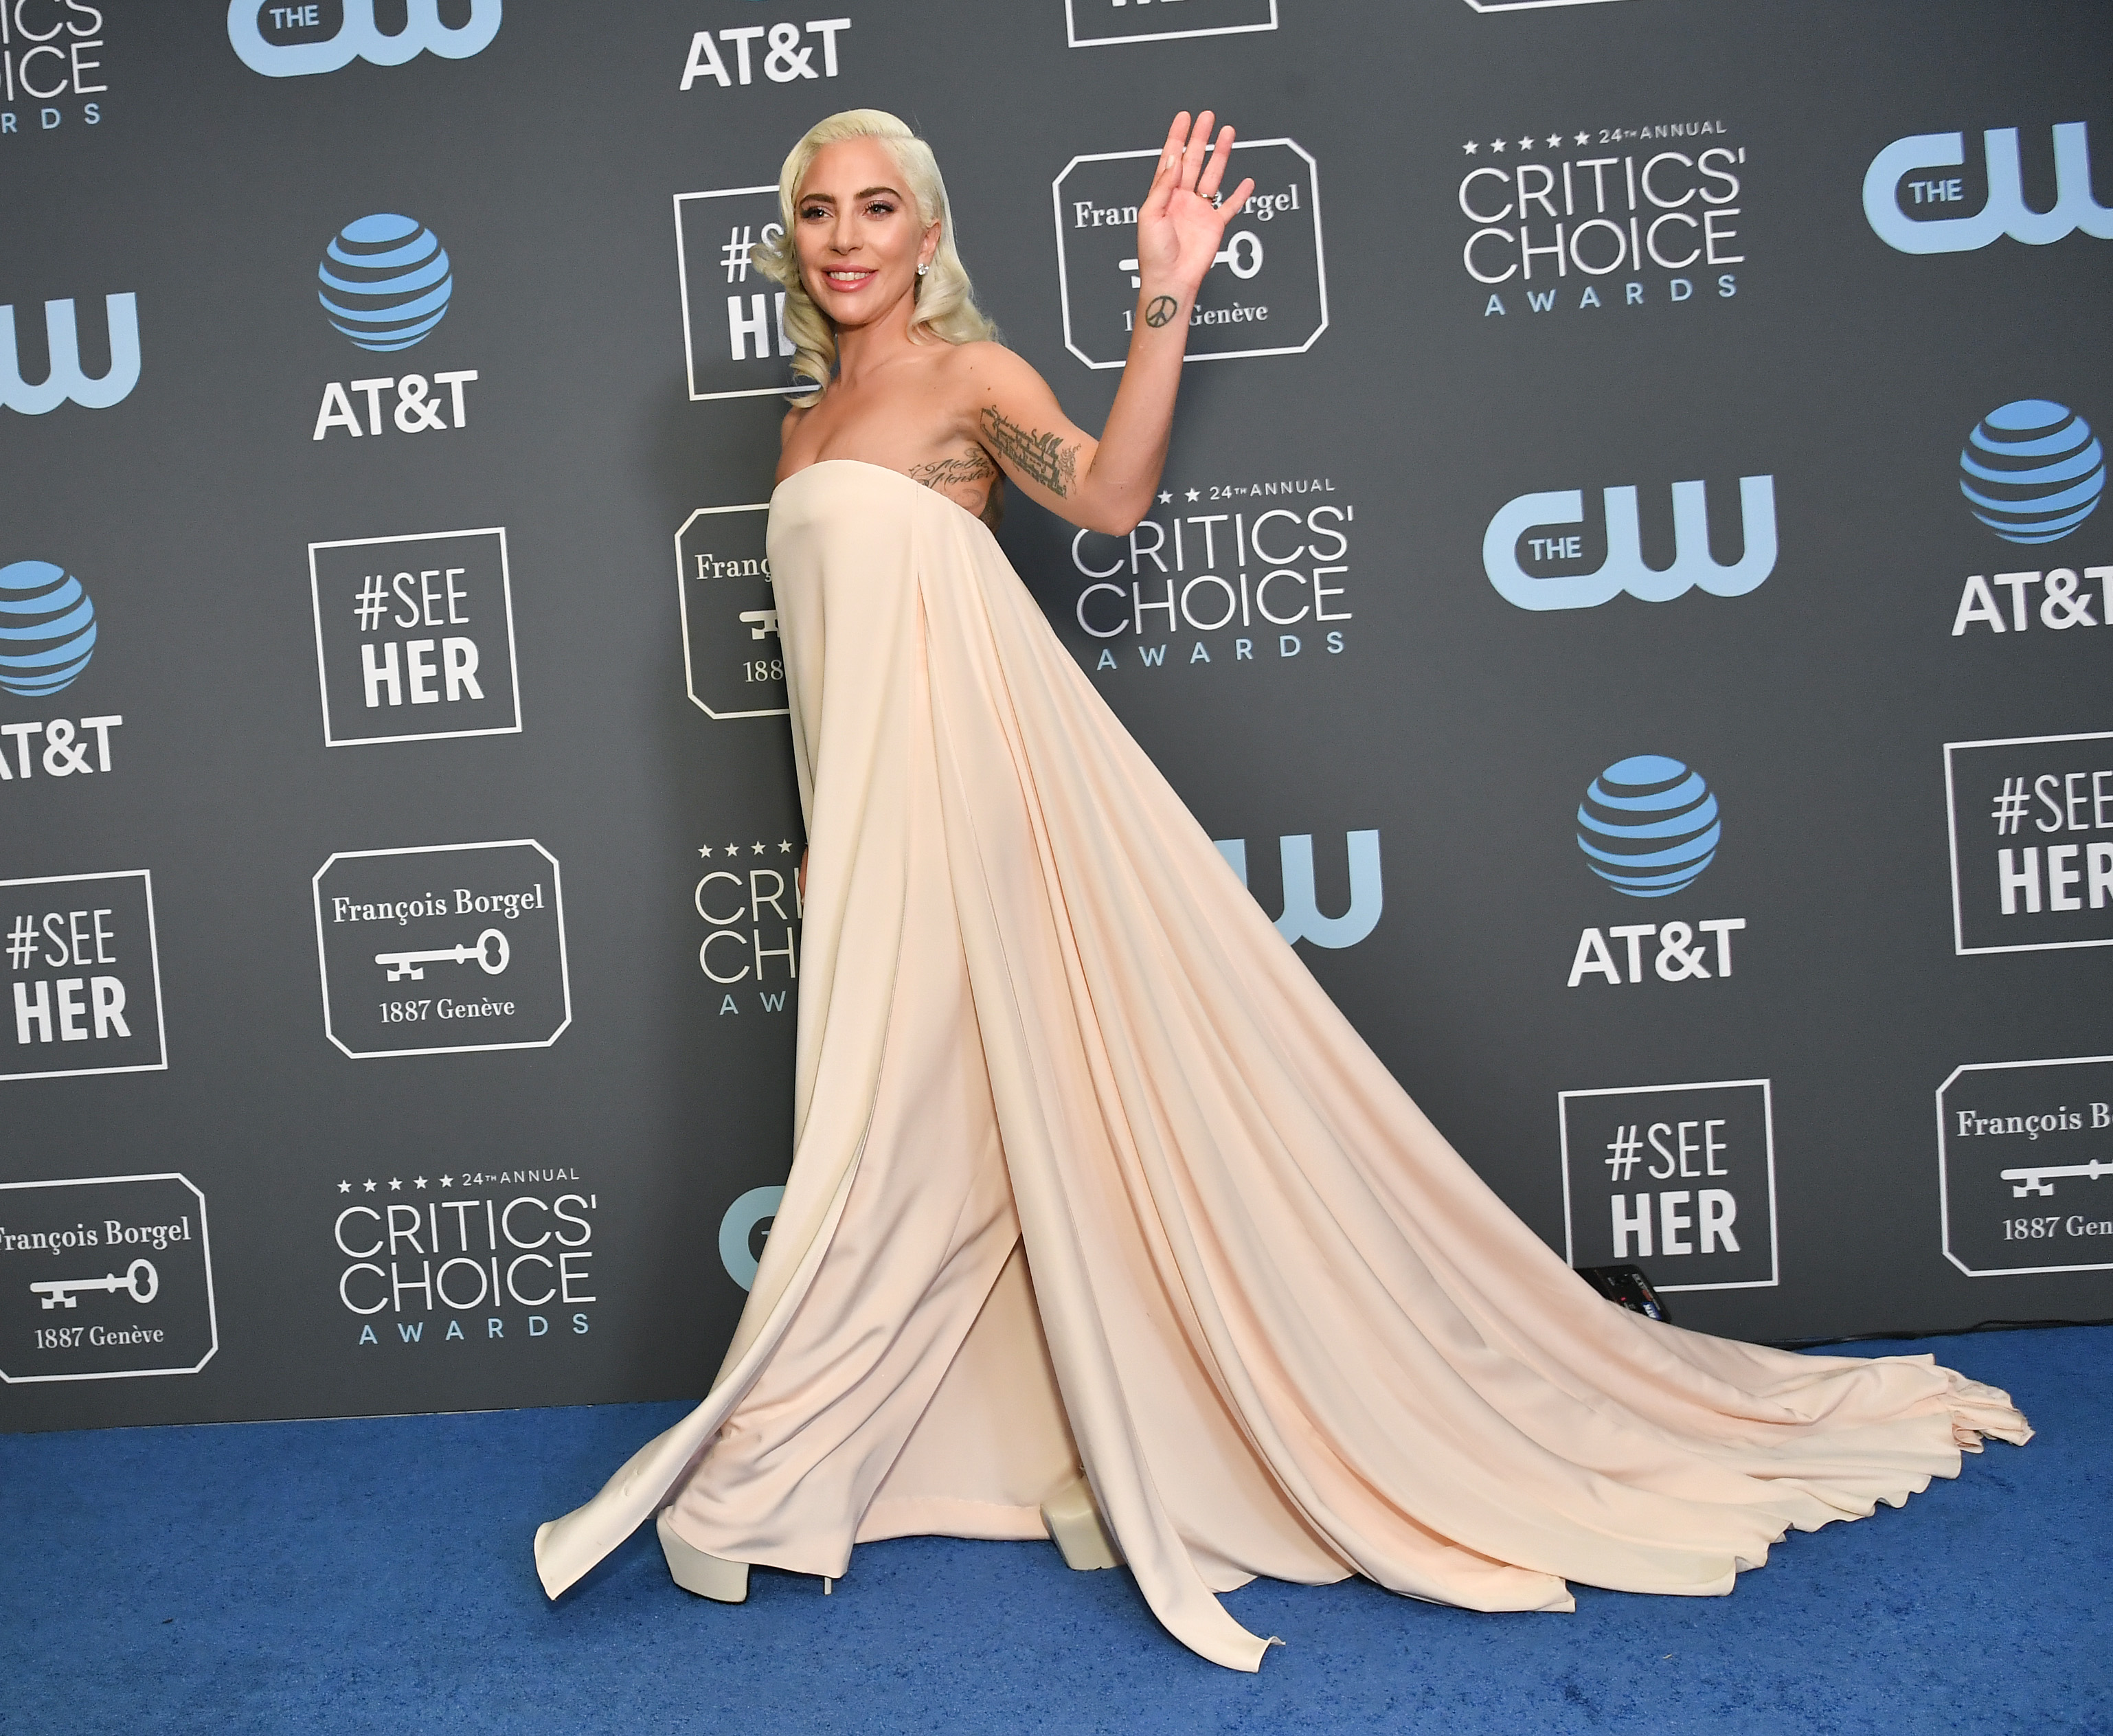 Lady Gaga Calvin Klein's Most Memorable Red Carpet Looks